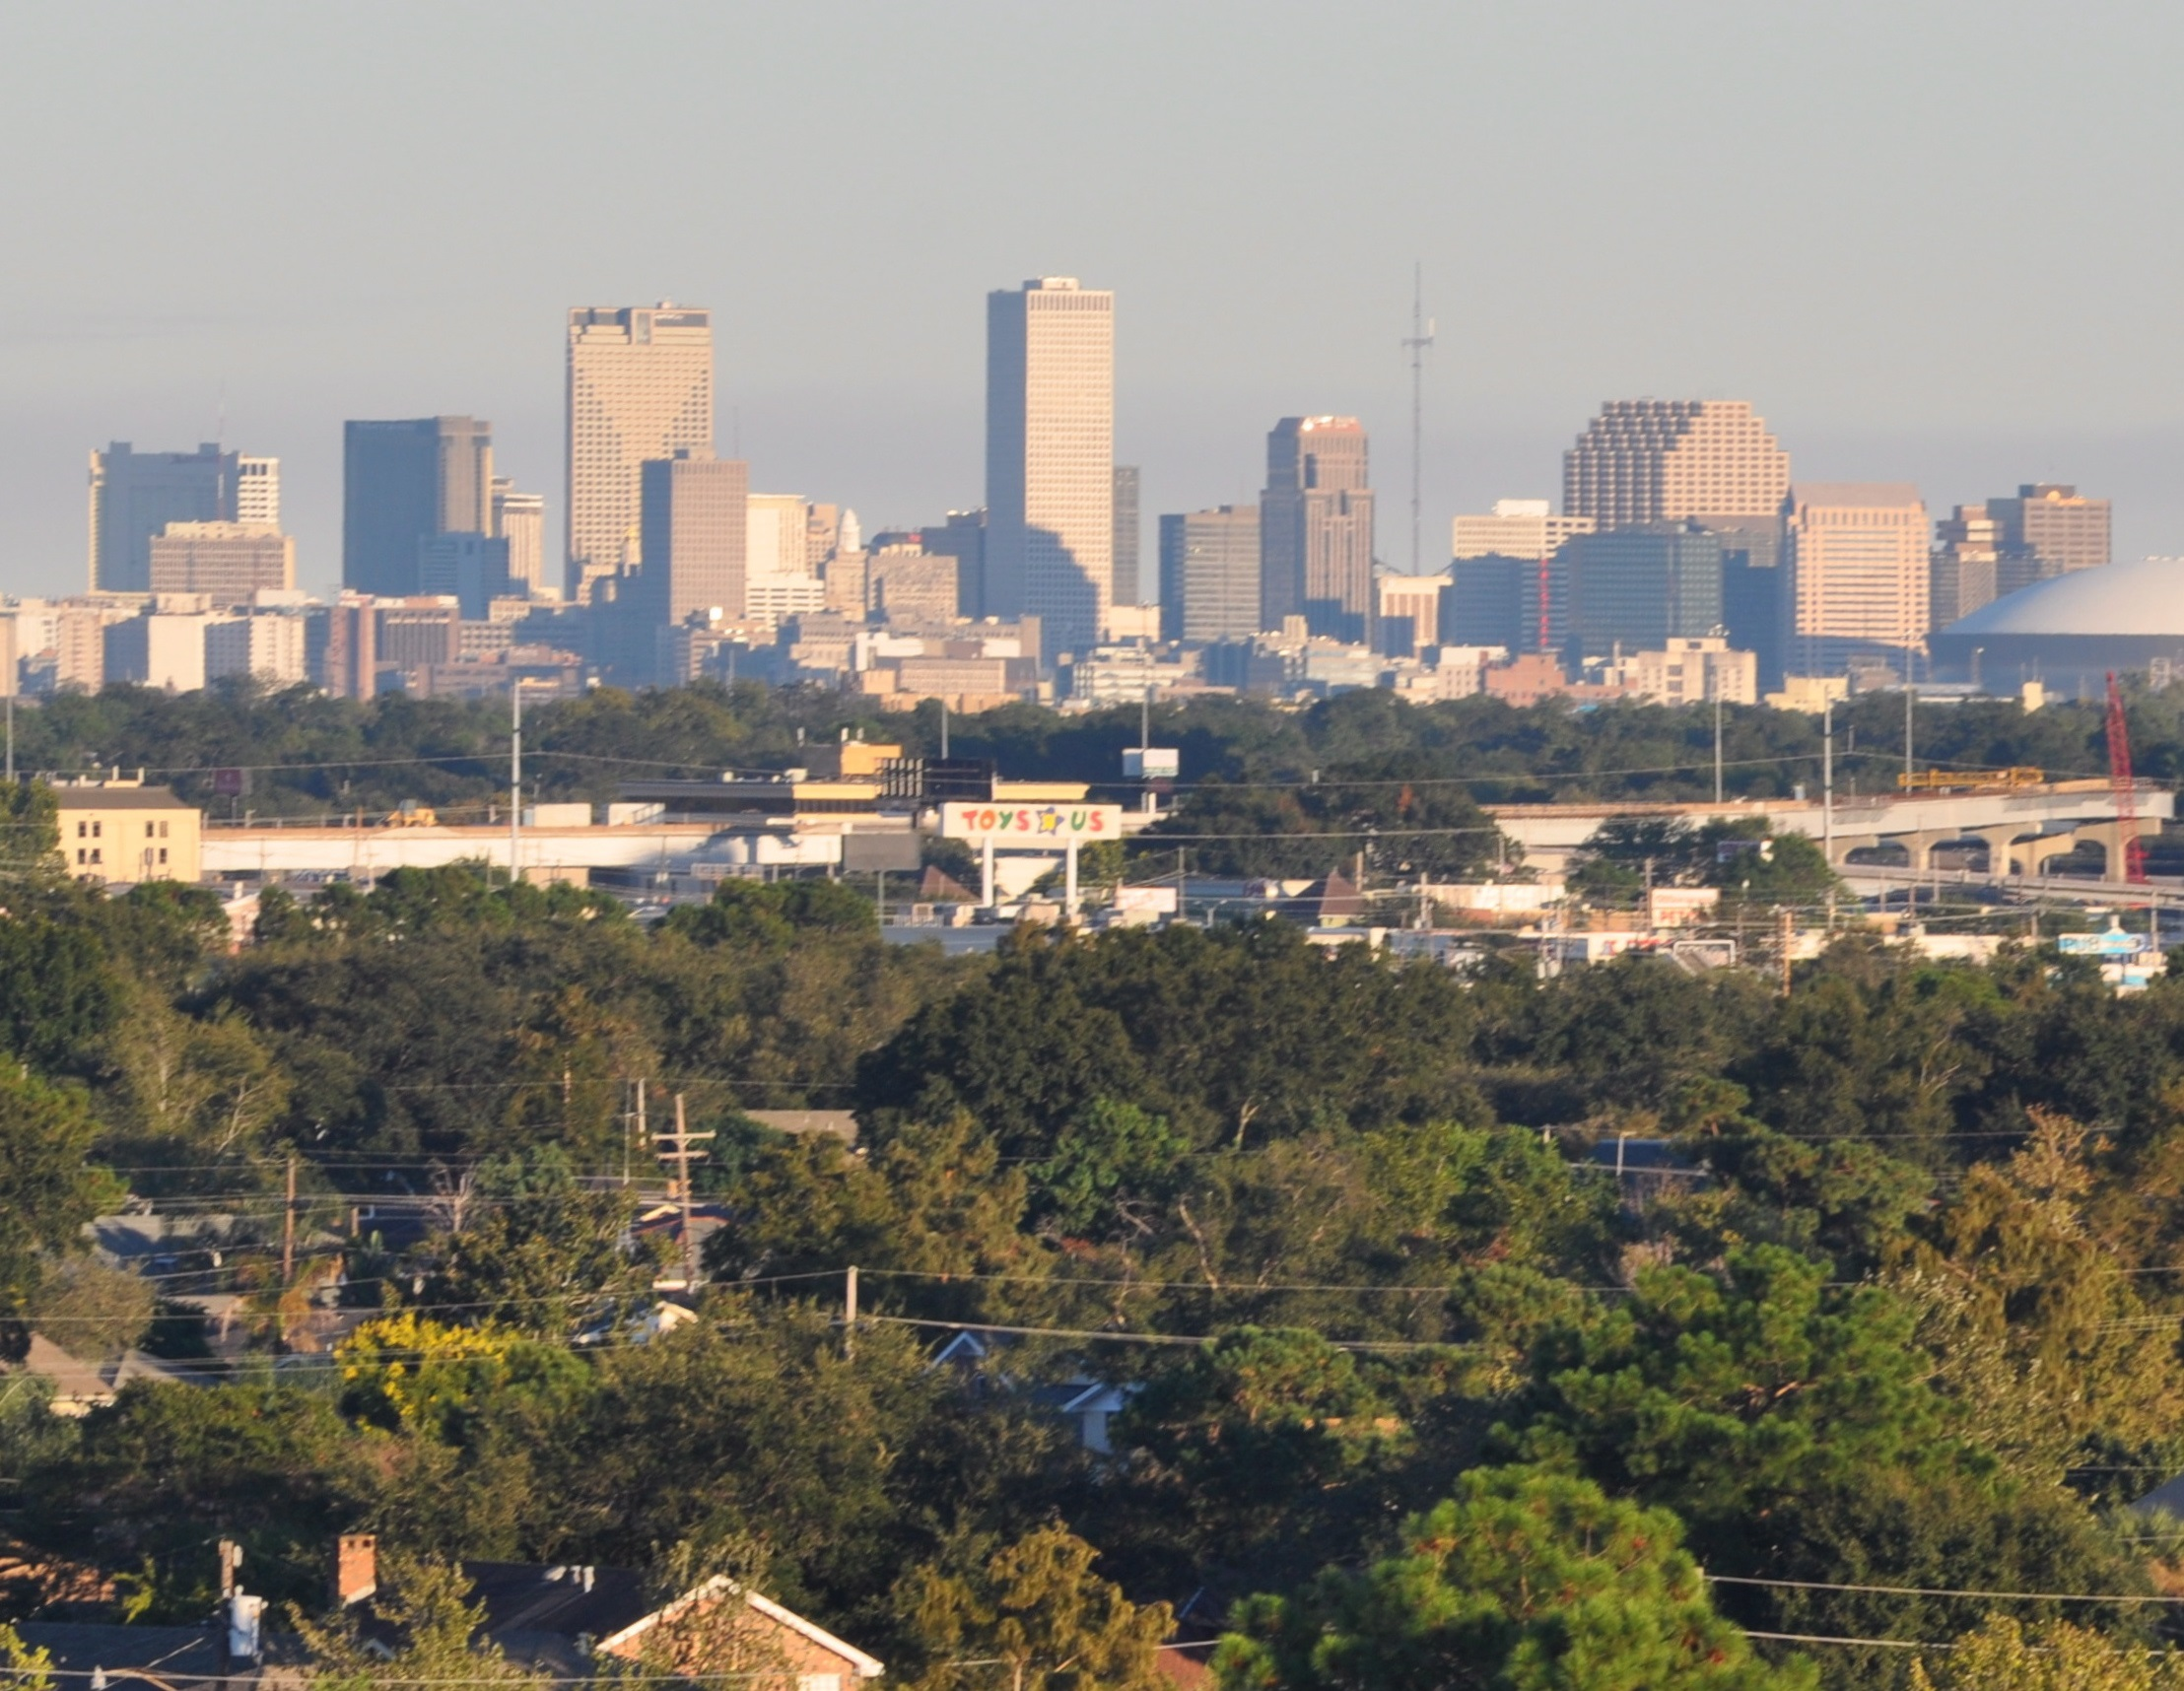 Research Metairie real estate market trends and find homes for sale. Search for new homes, open houses, recently sold homes and reduced price real estate in Metairie.